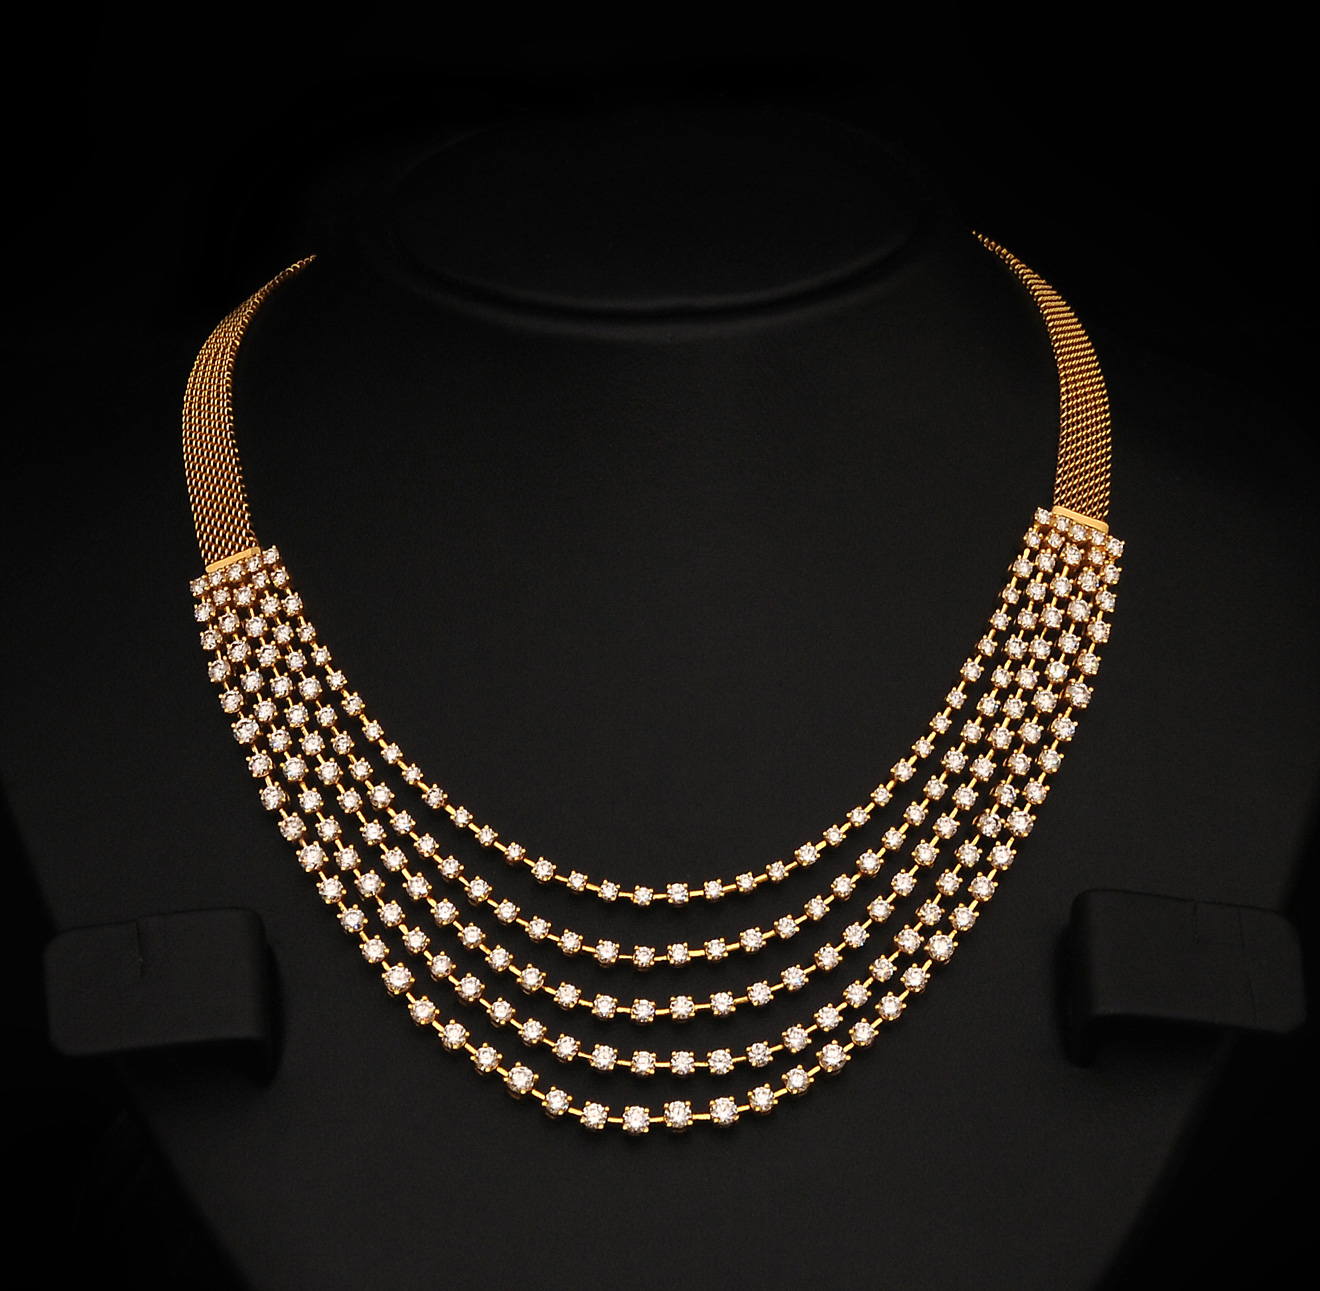 Indian Gold Jewellery Necklace Designs With Price: Indian Jewellery And Clothing